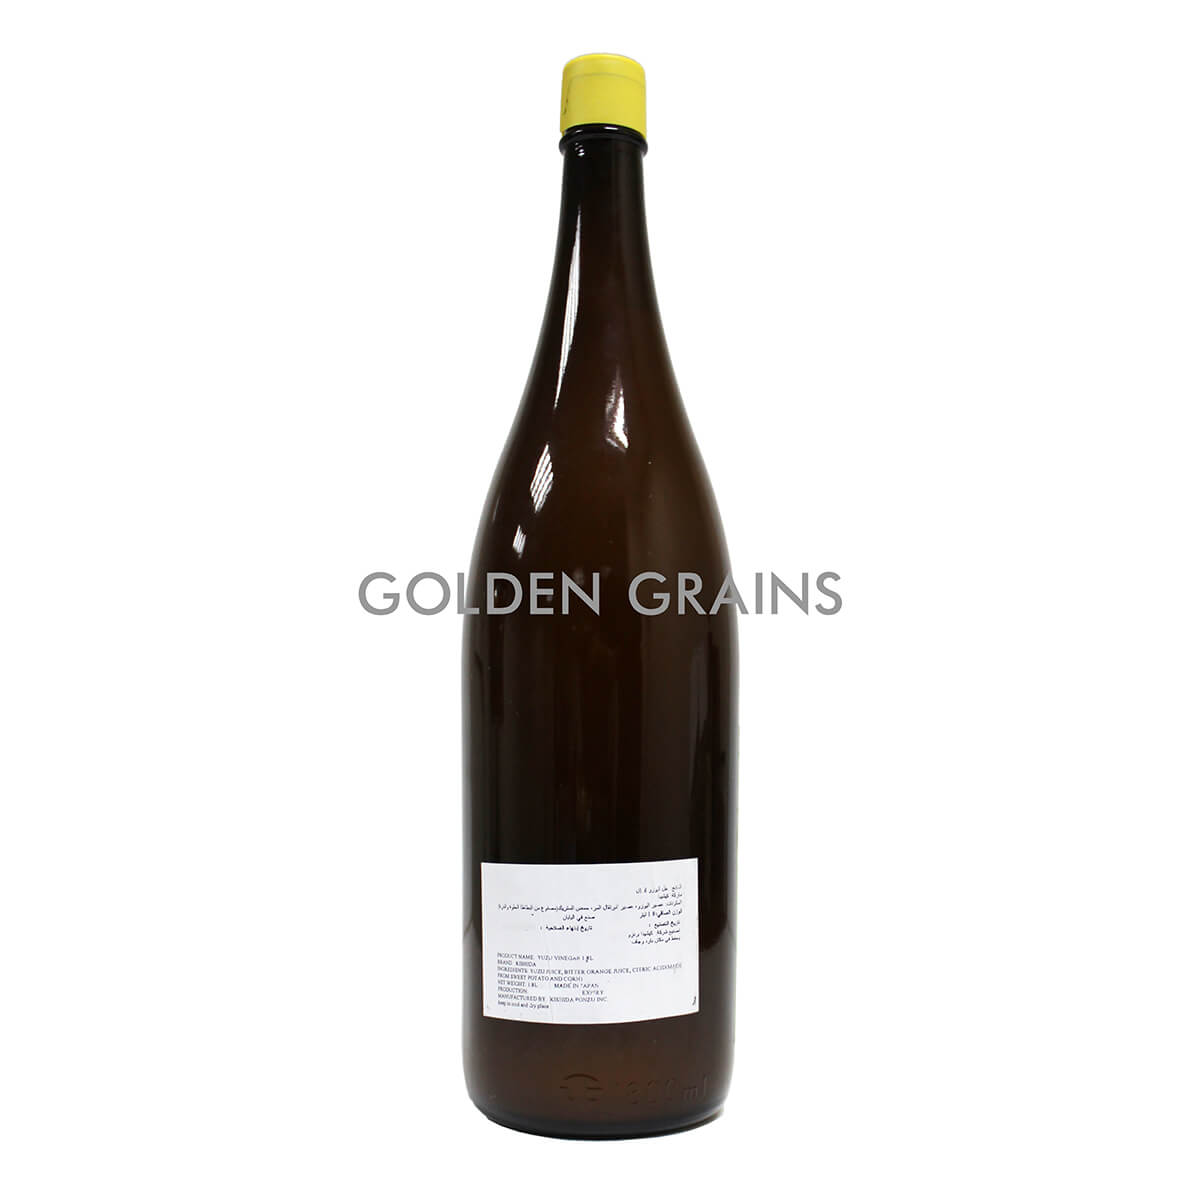 Golden Grains Dubai Export - Kishida - Yuzu Vinegar - Back.jpg